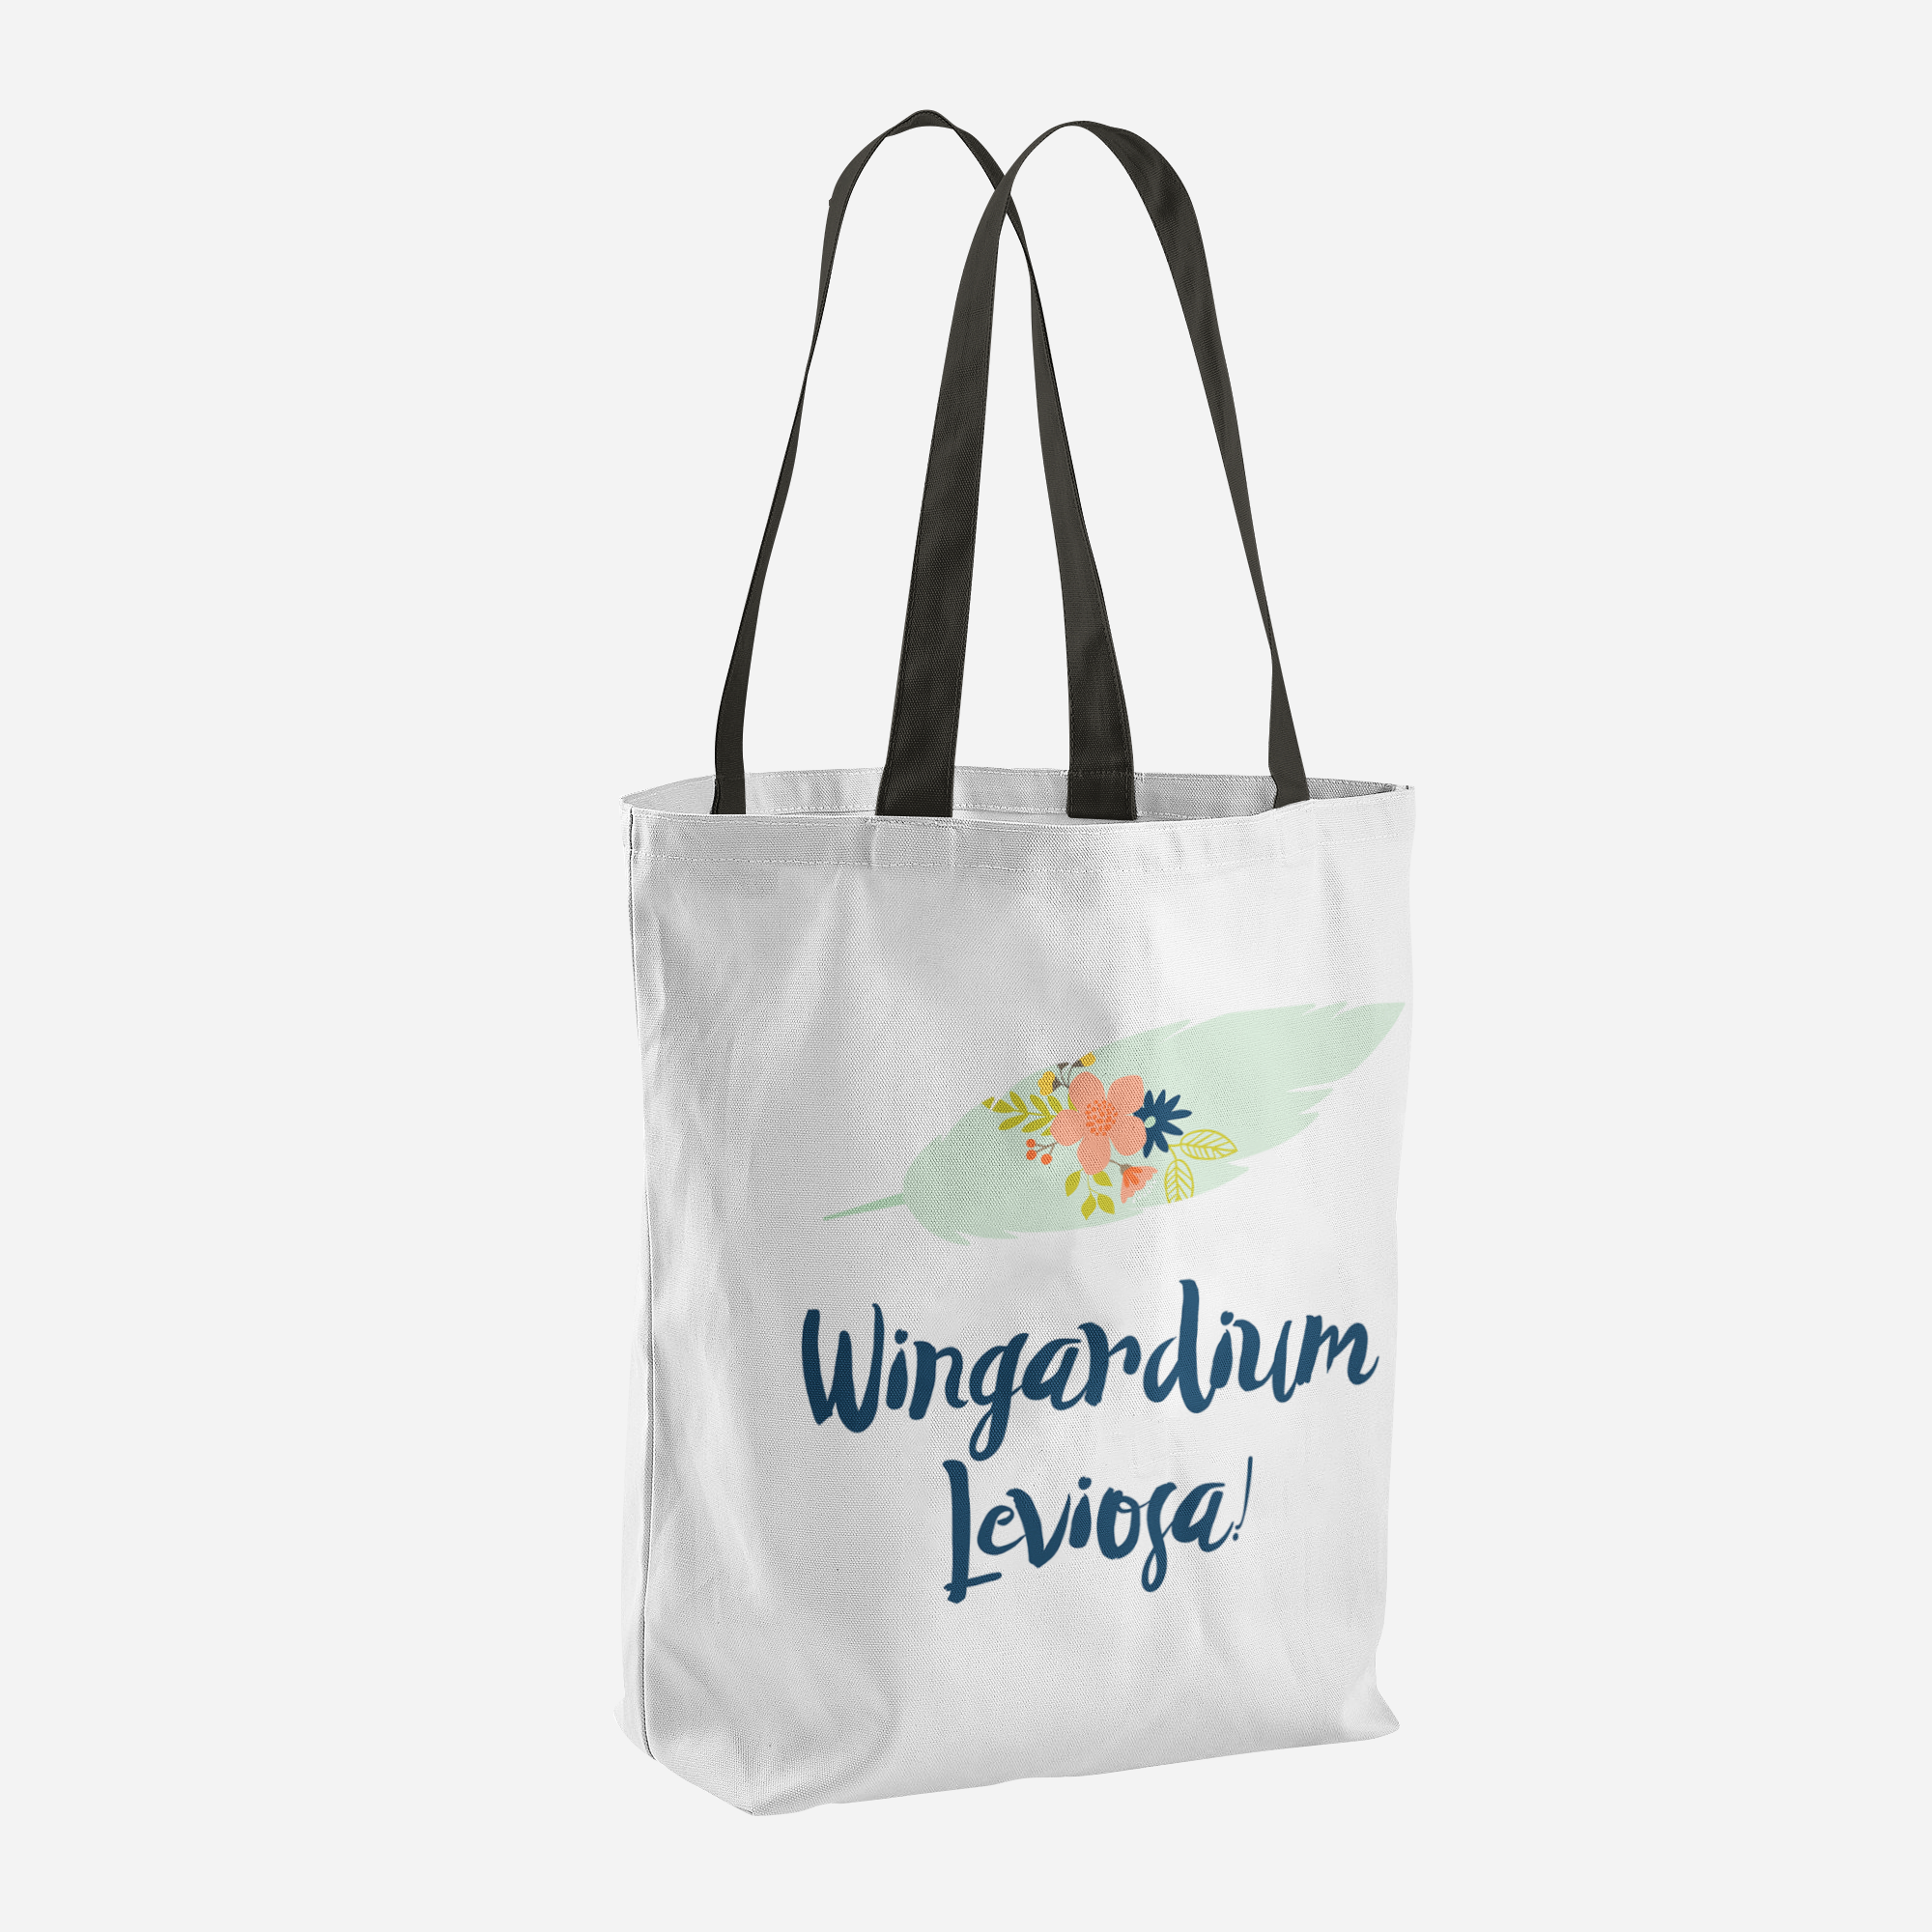 Wingardium Leviosa! Harry Potter Spell Tote Bag - LitLifeCo.